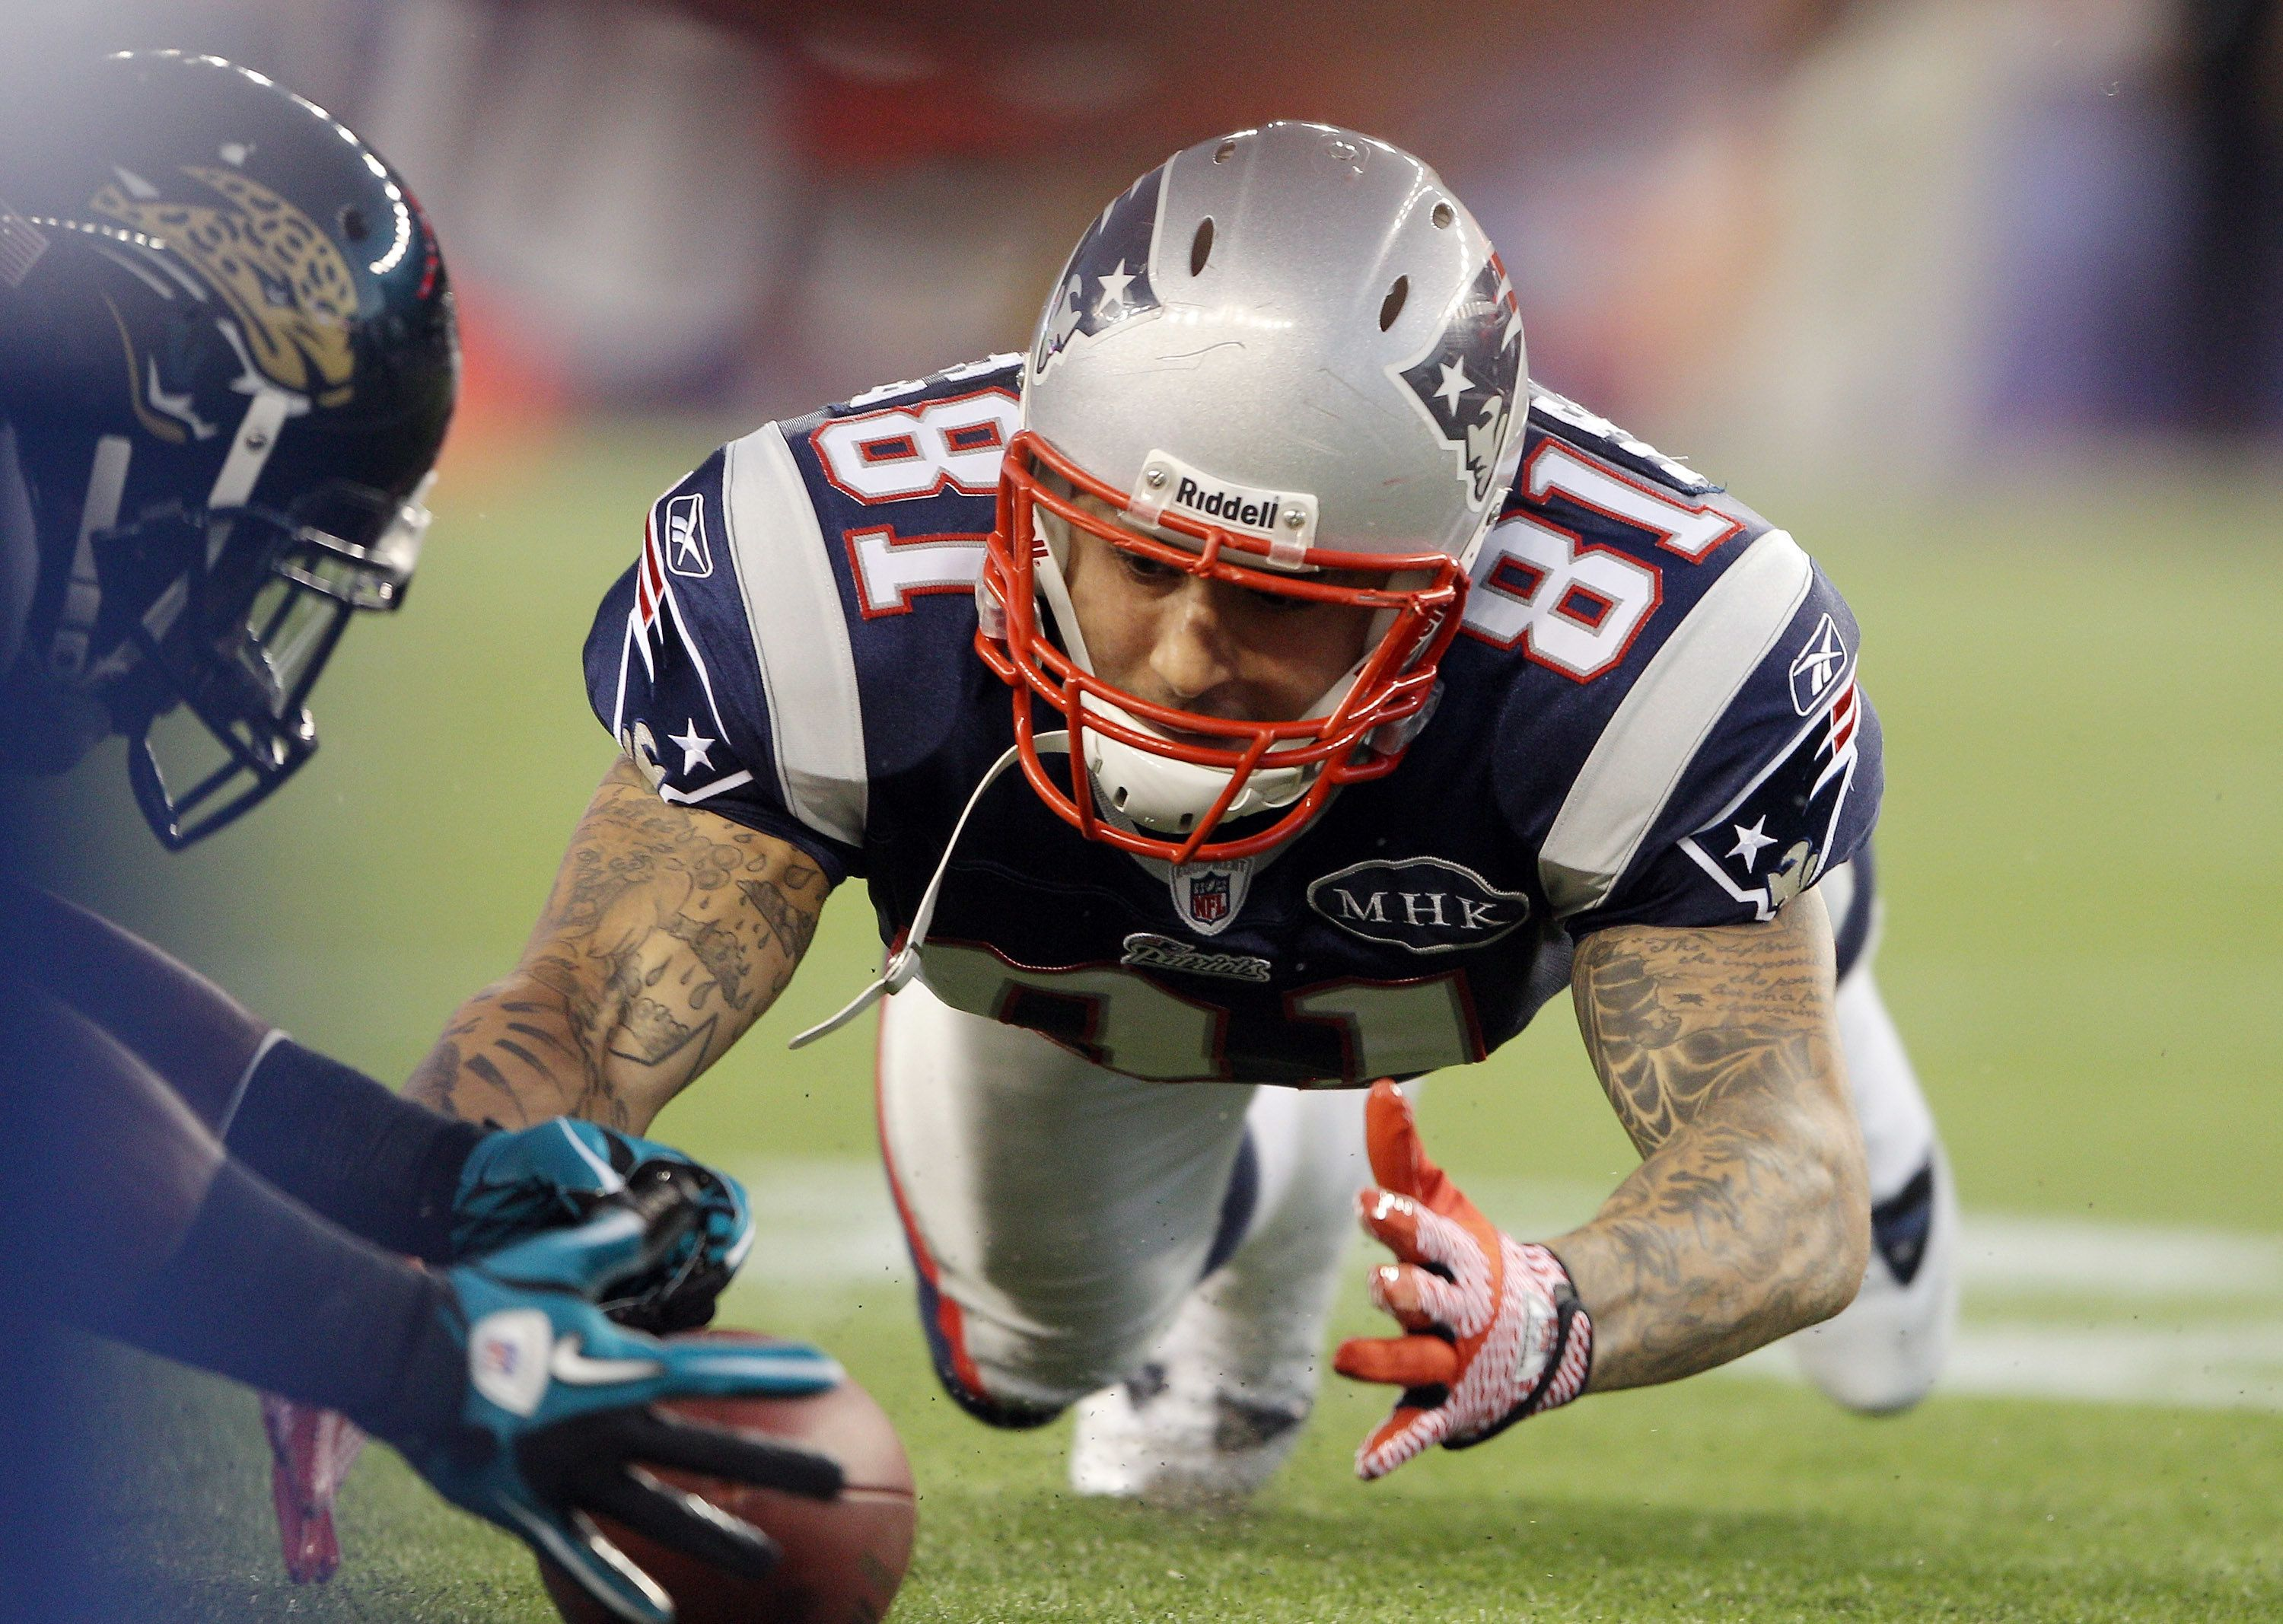 Boston TV station uses Aaron Hernandez photo in tweet about Patriots' win